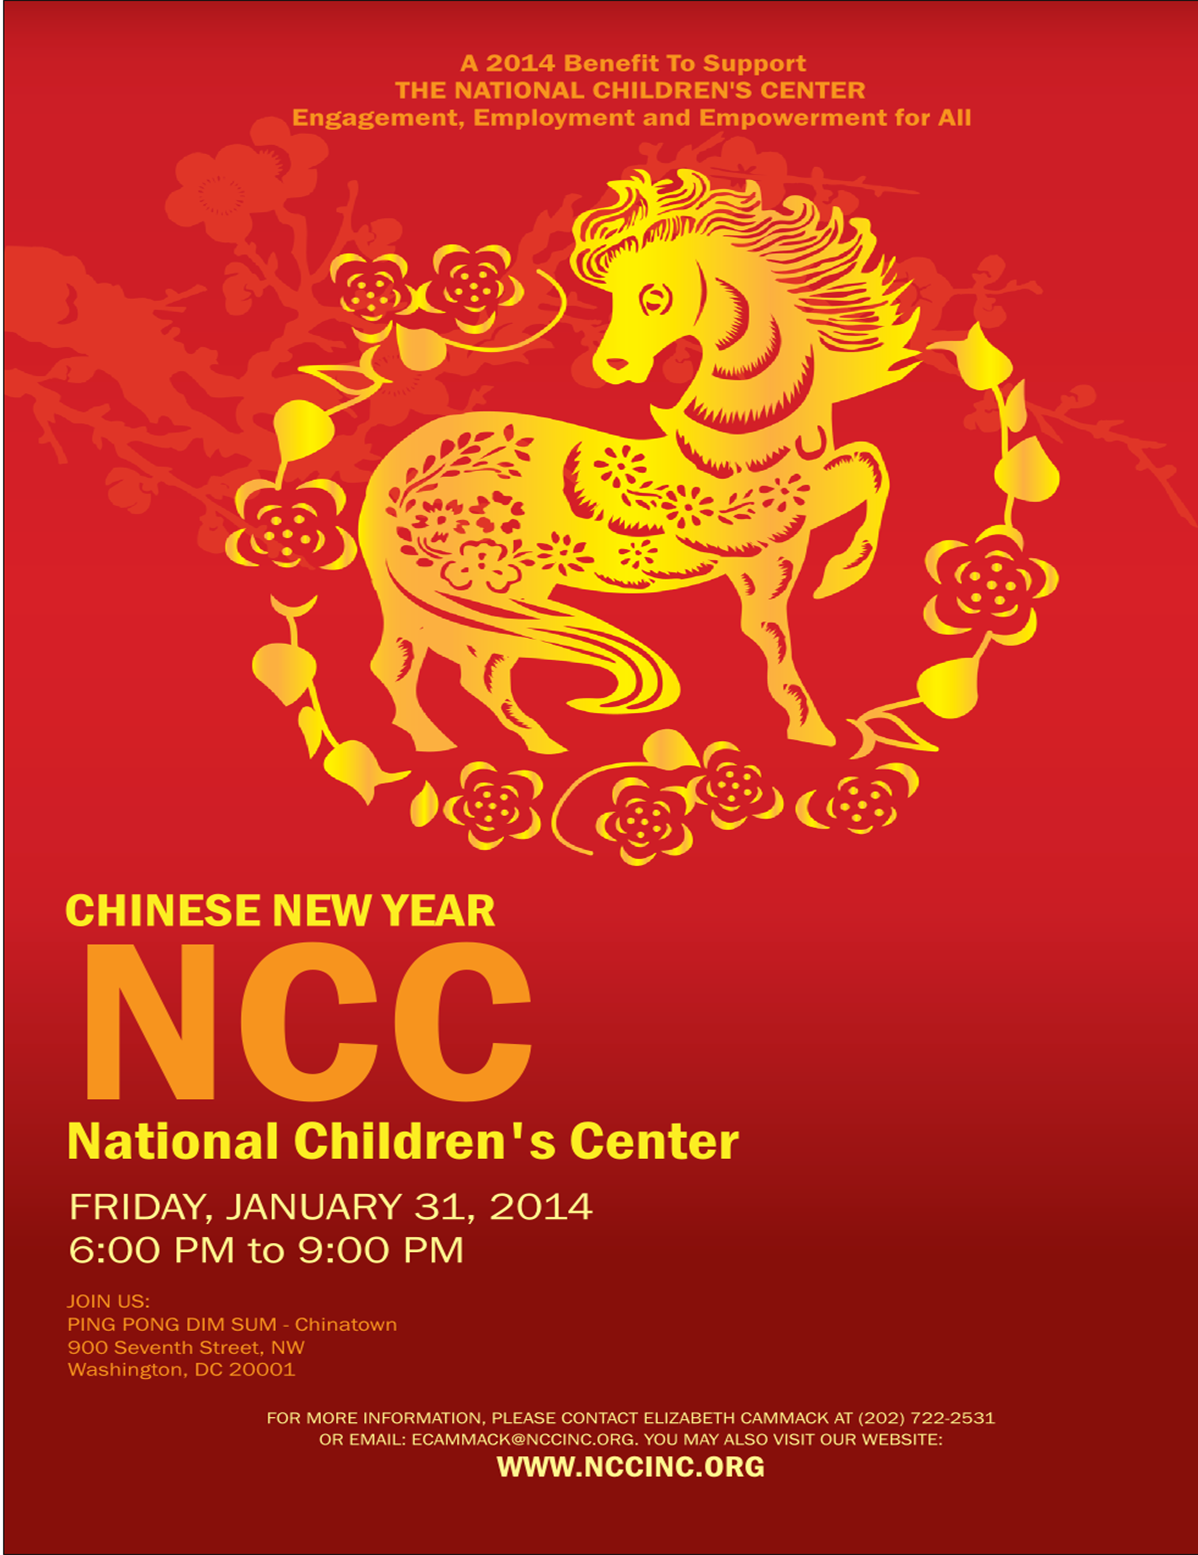 NCC Chinese New Year 2014 Invitation